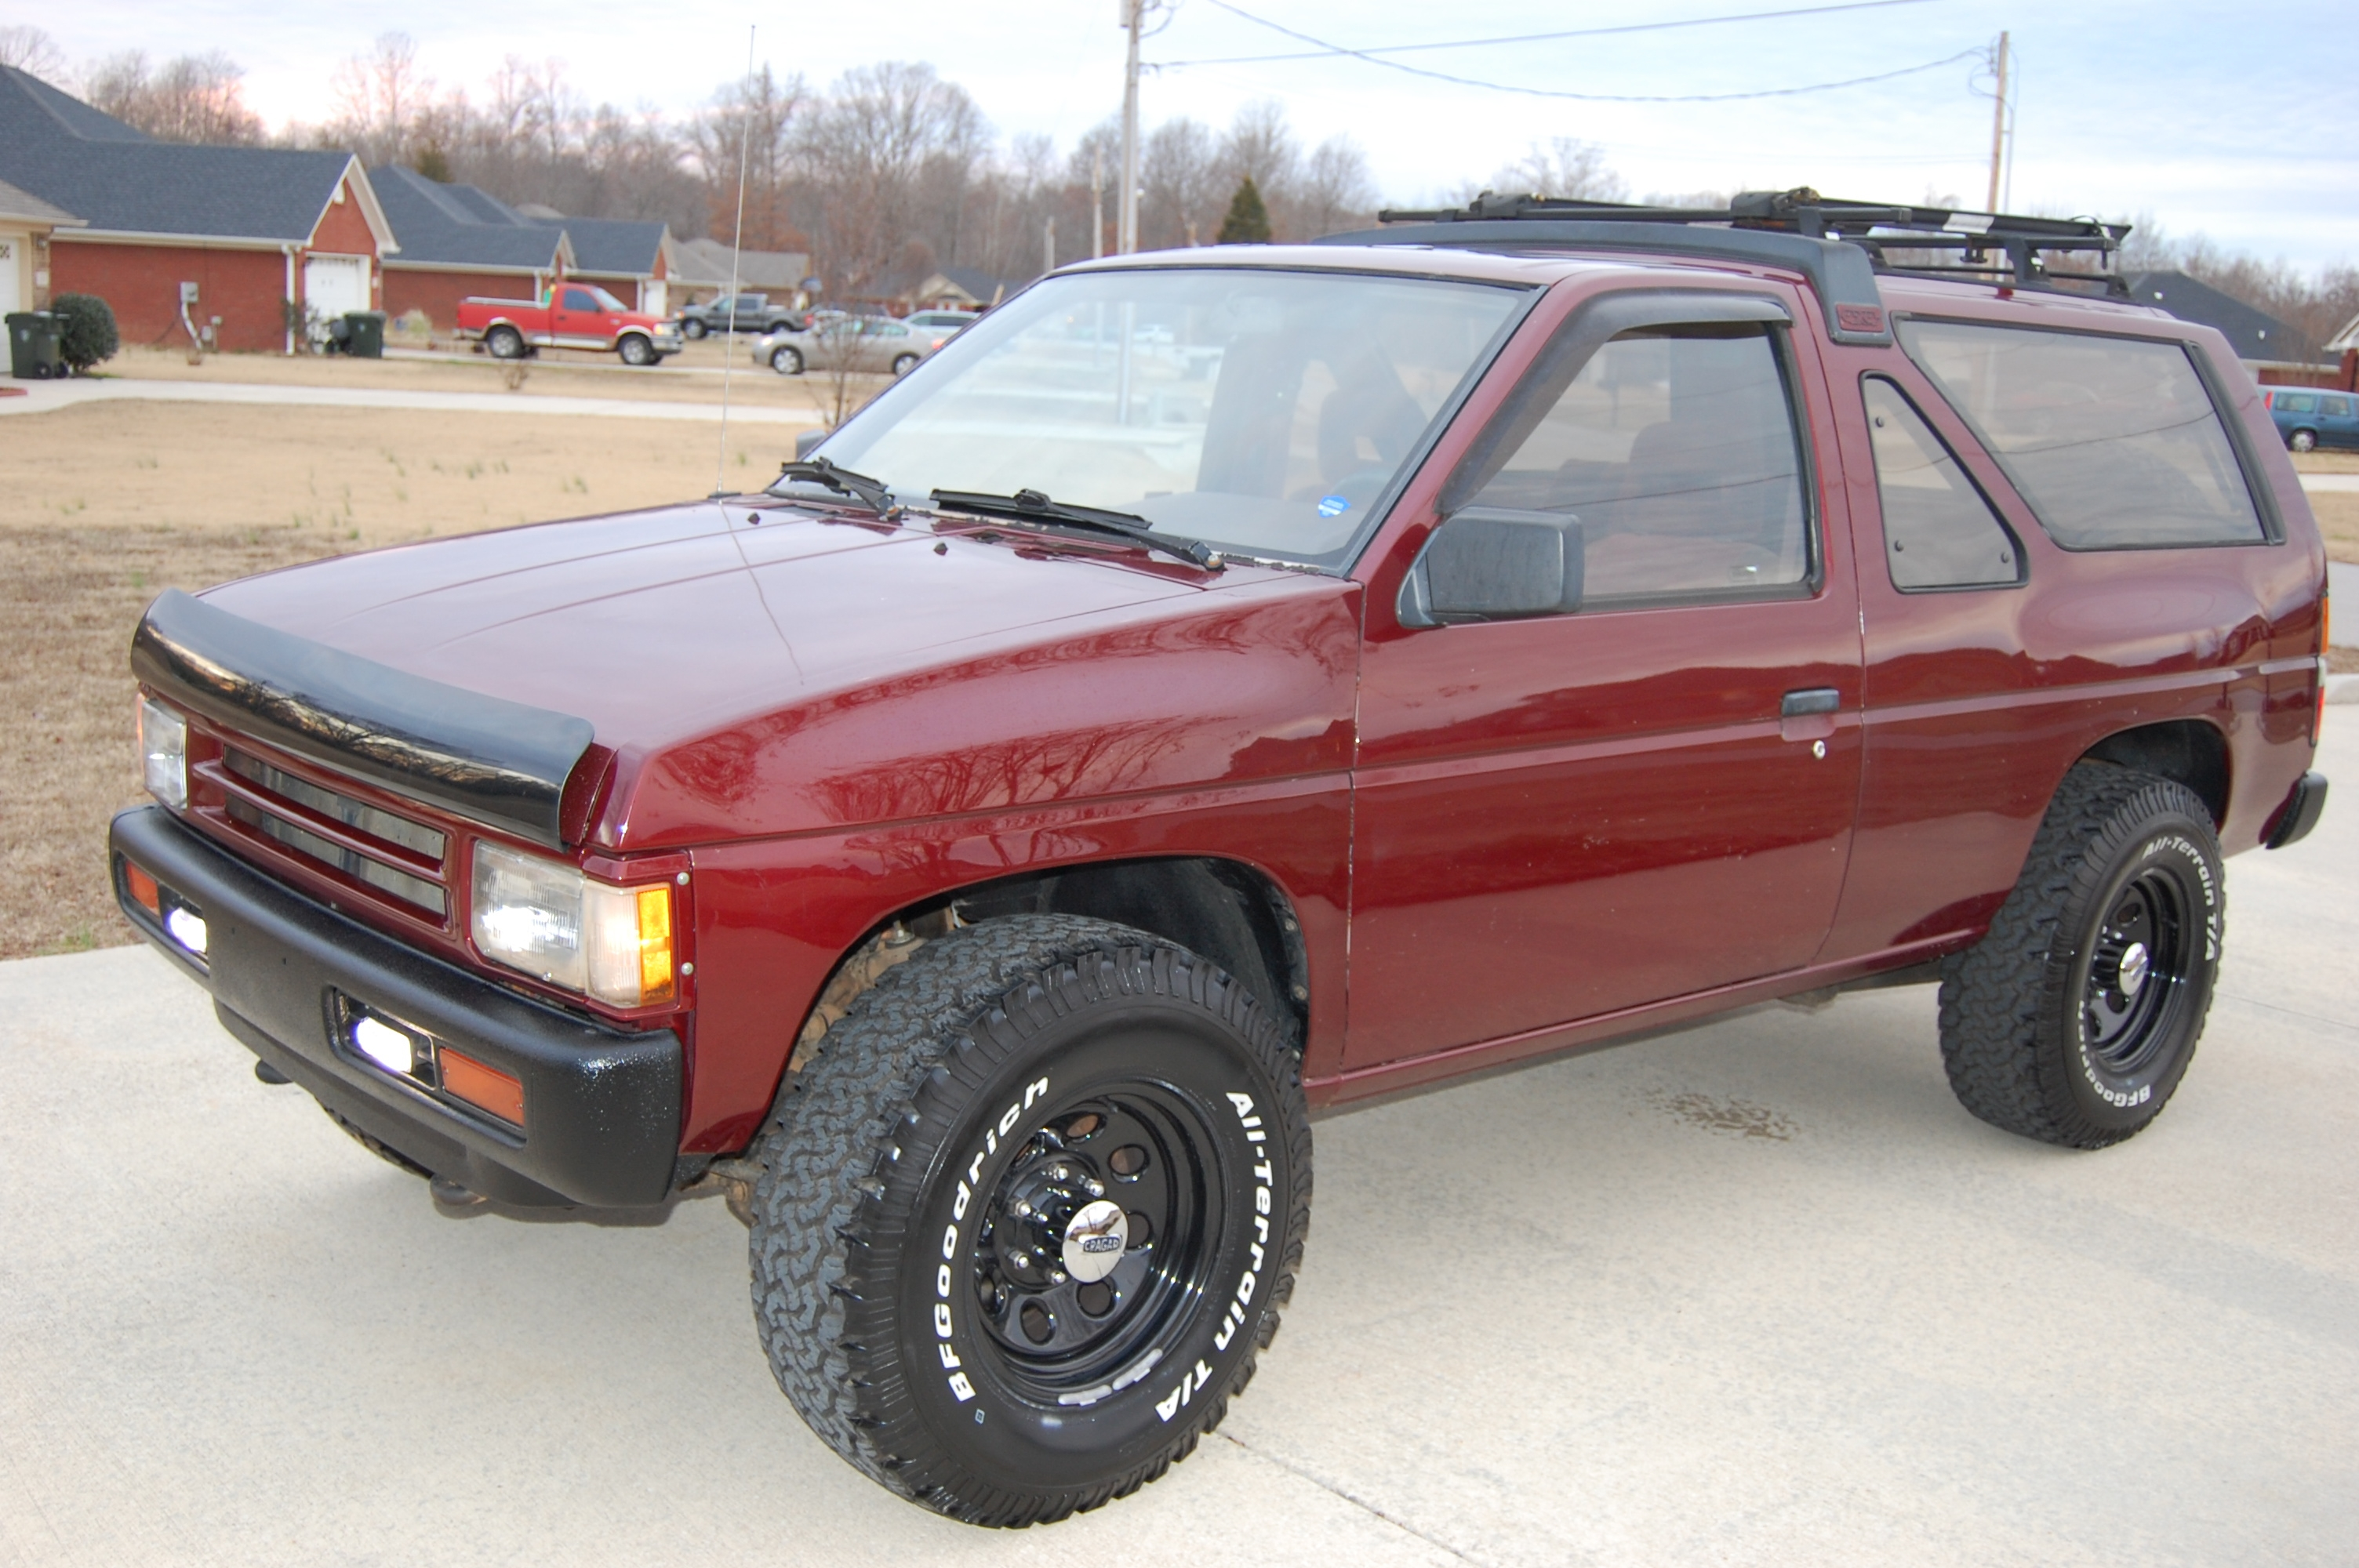 intenseconcepts1 1988 Nissan Pathfinder Specs, Photos, Modification